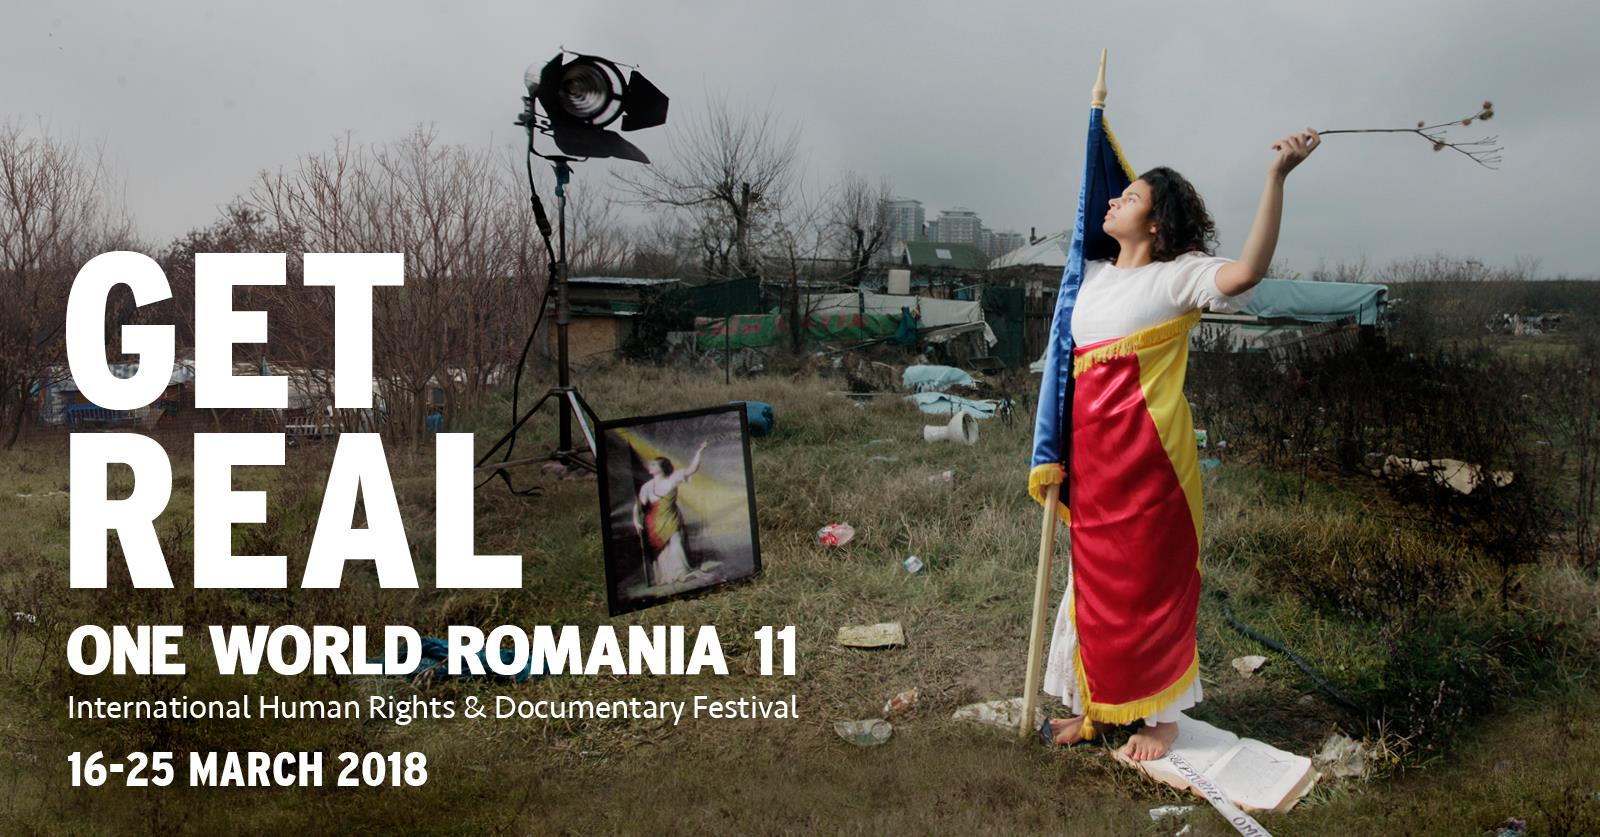 One World Romania 11